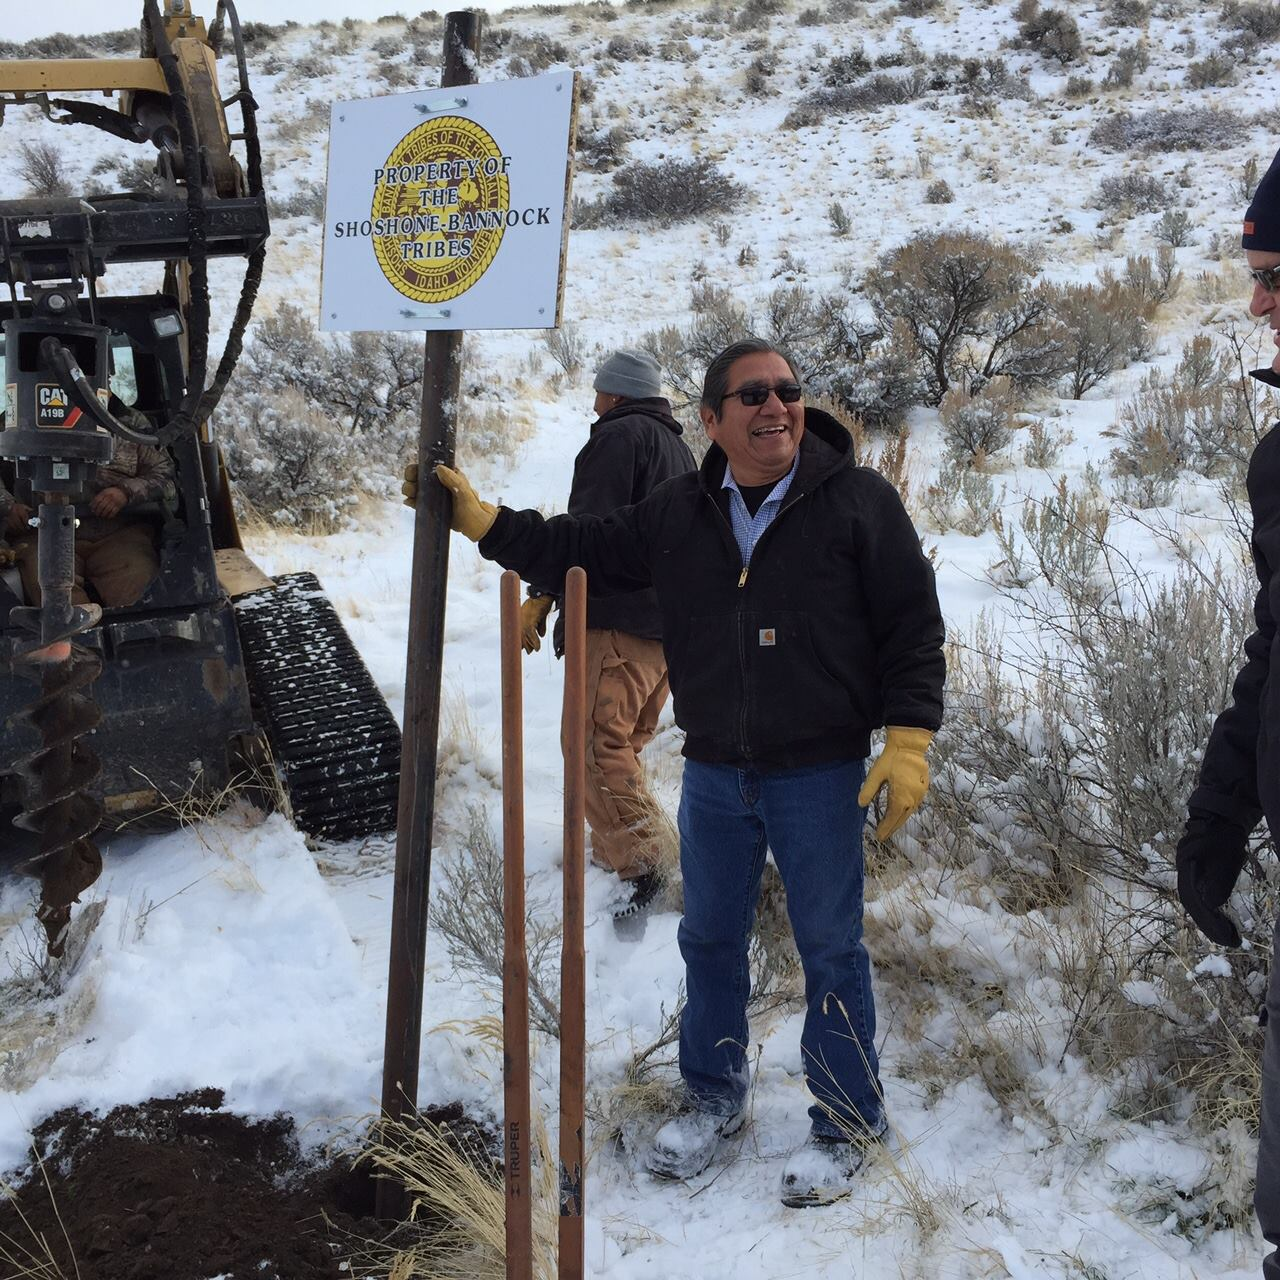 Shoshone-Bannock Tribes assert ownership of local trail system